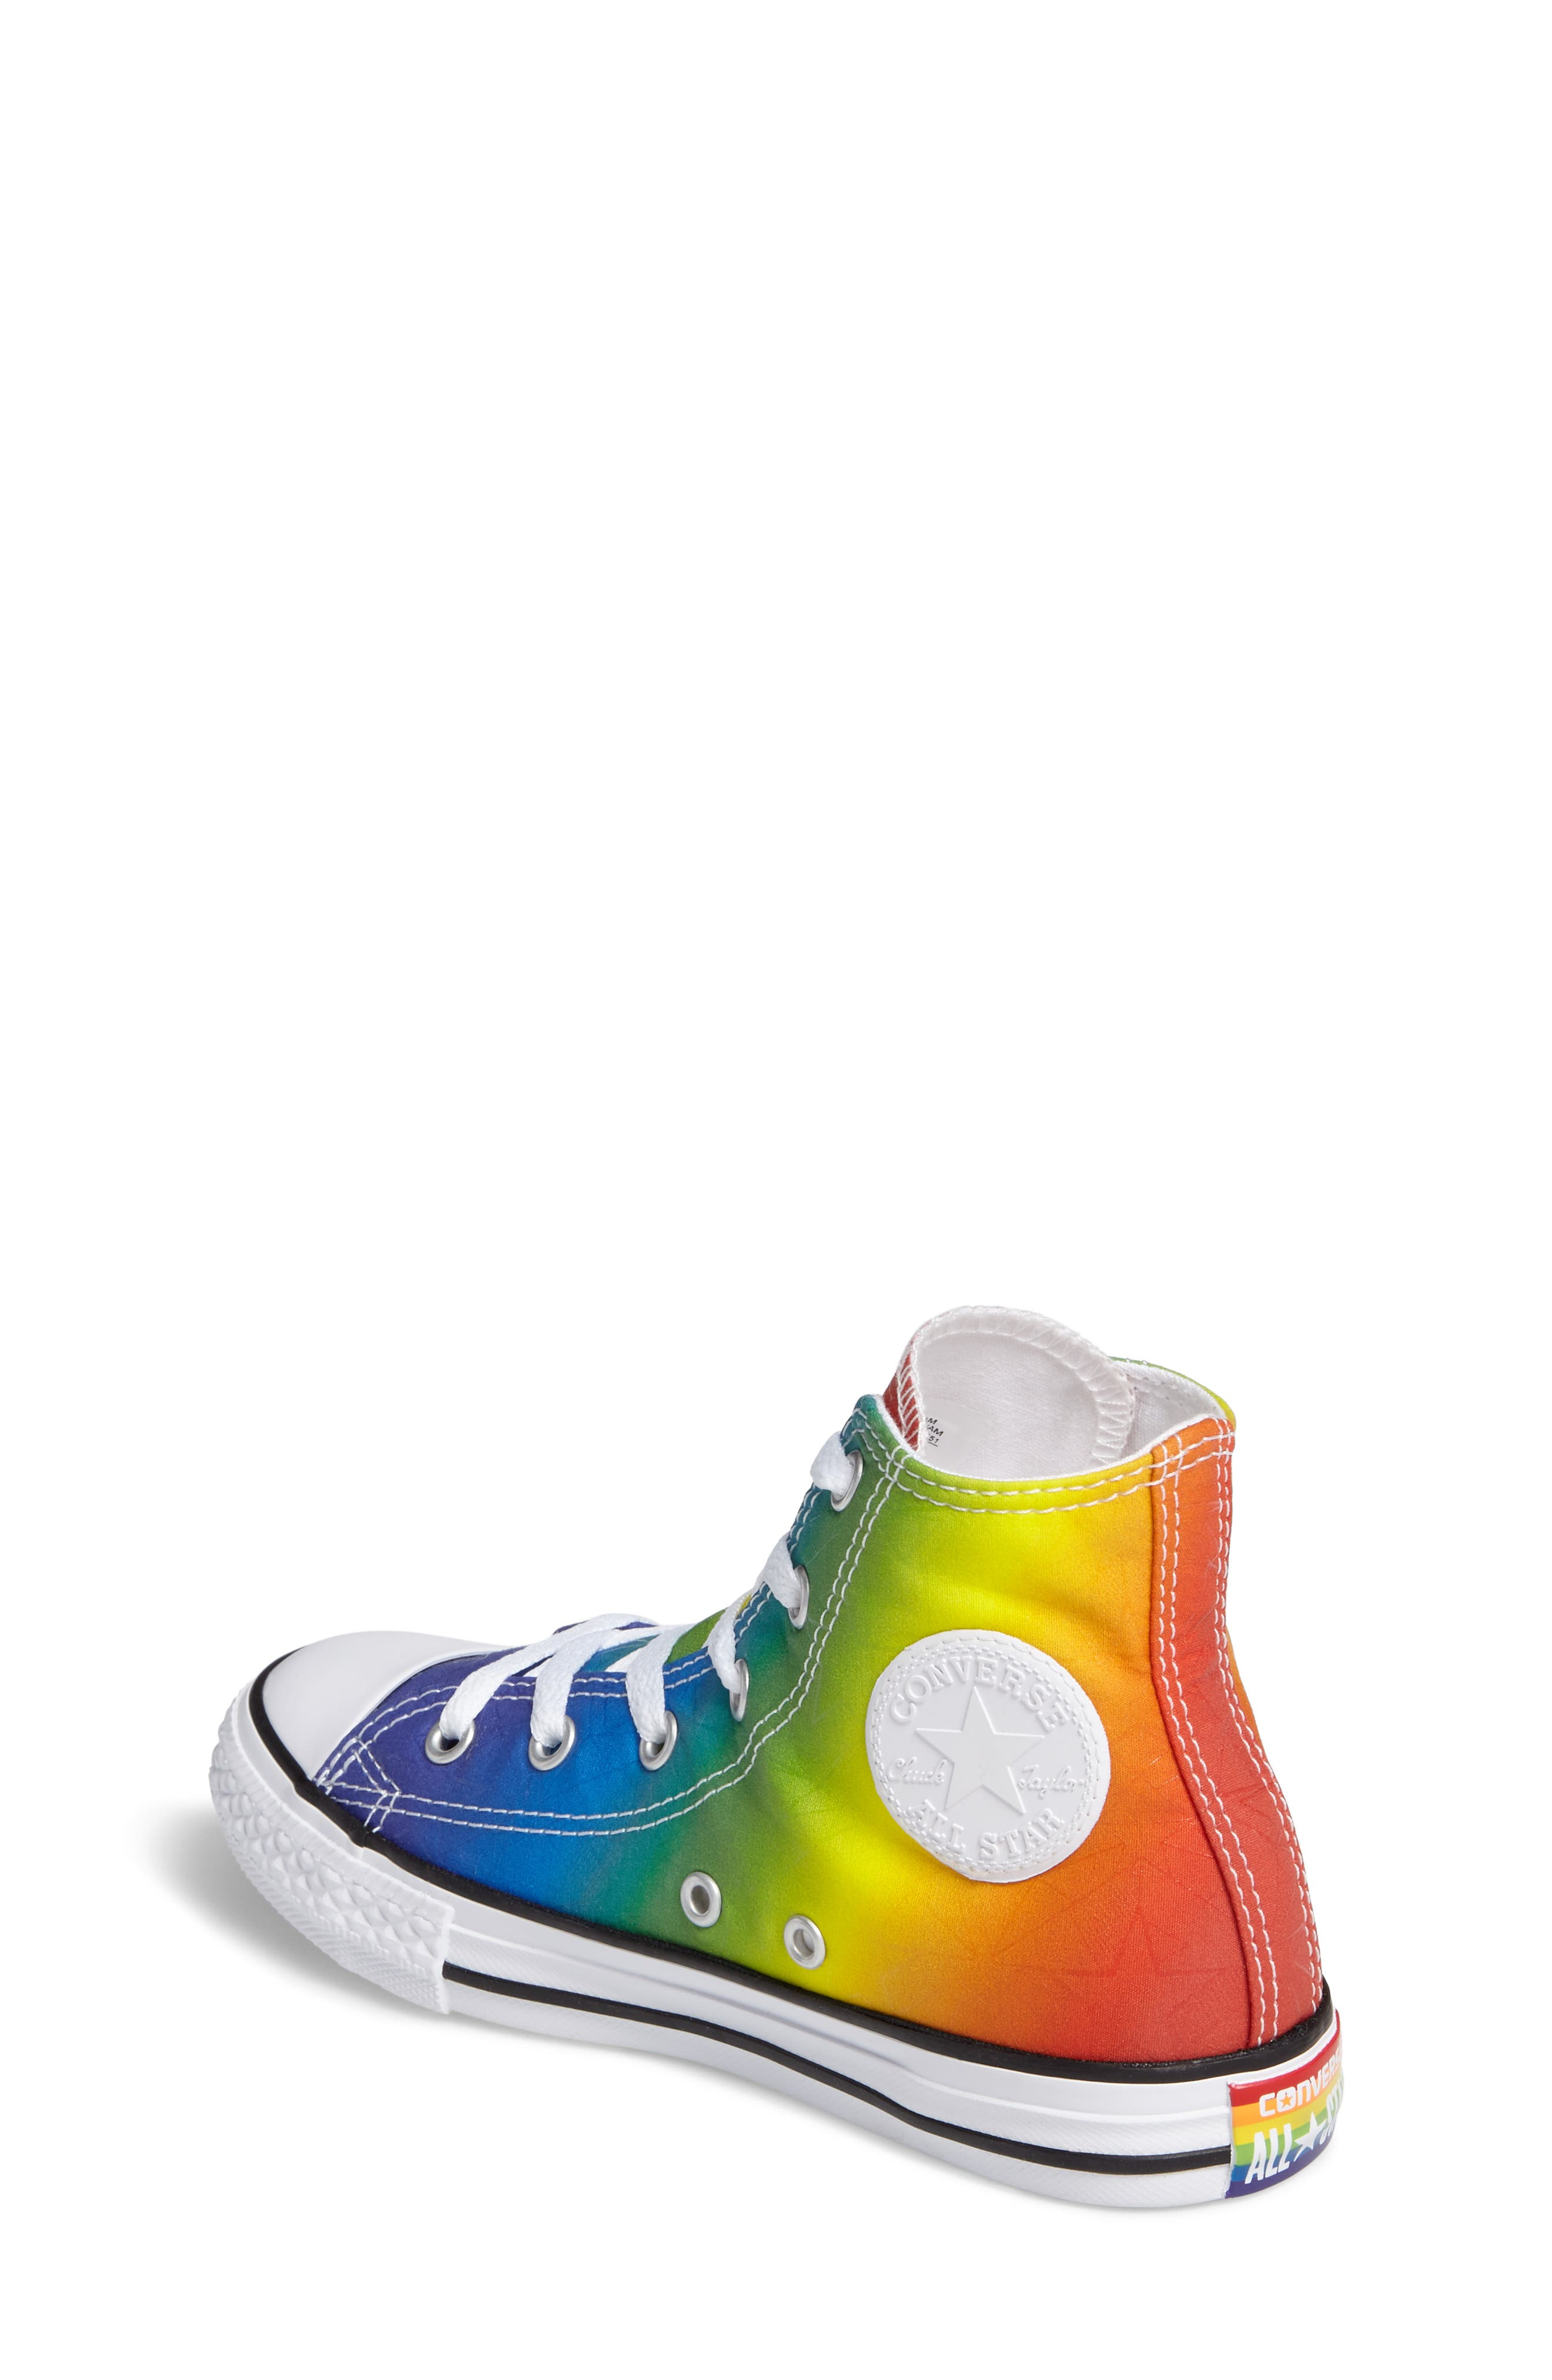 Chuck Taylor<sup>®</sup> All Star<sup>®</sup> Pride High Top Sneaker,                             Alternate thumbnail 2, color,                             400